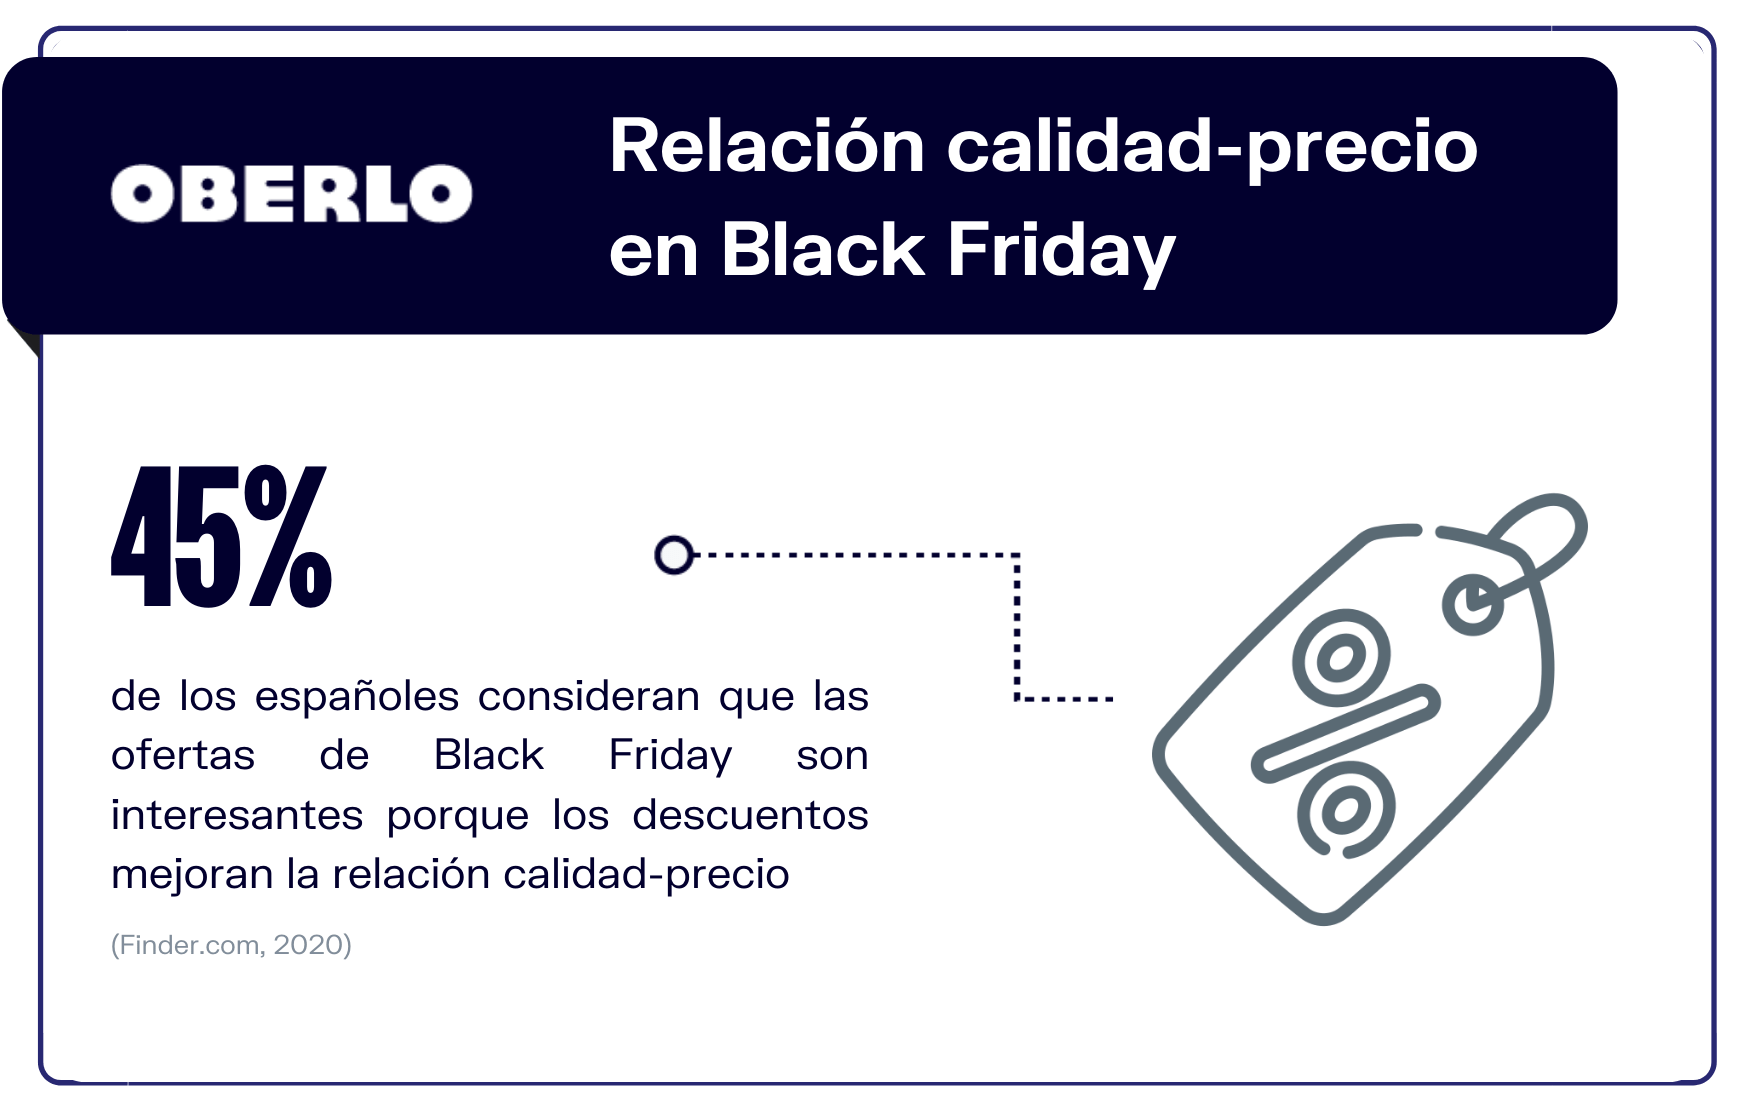 black friday estadisticas 2020